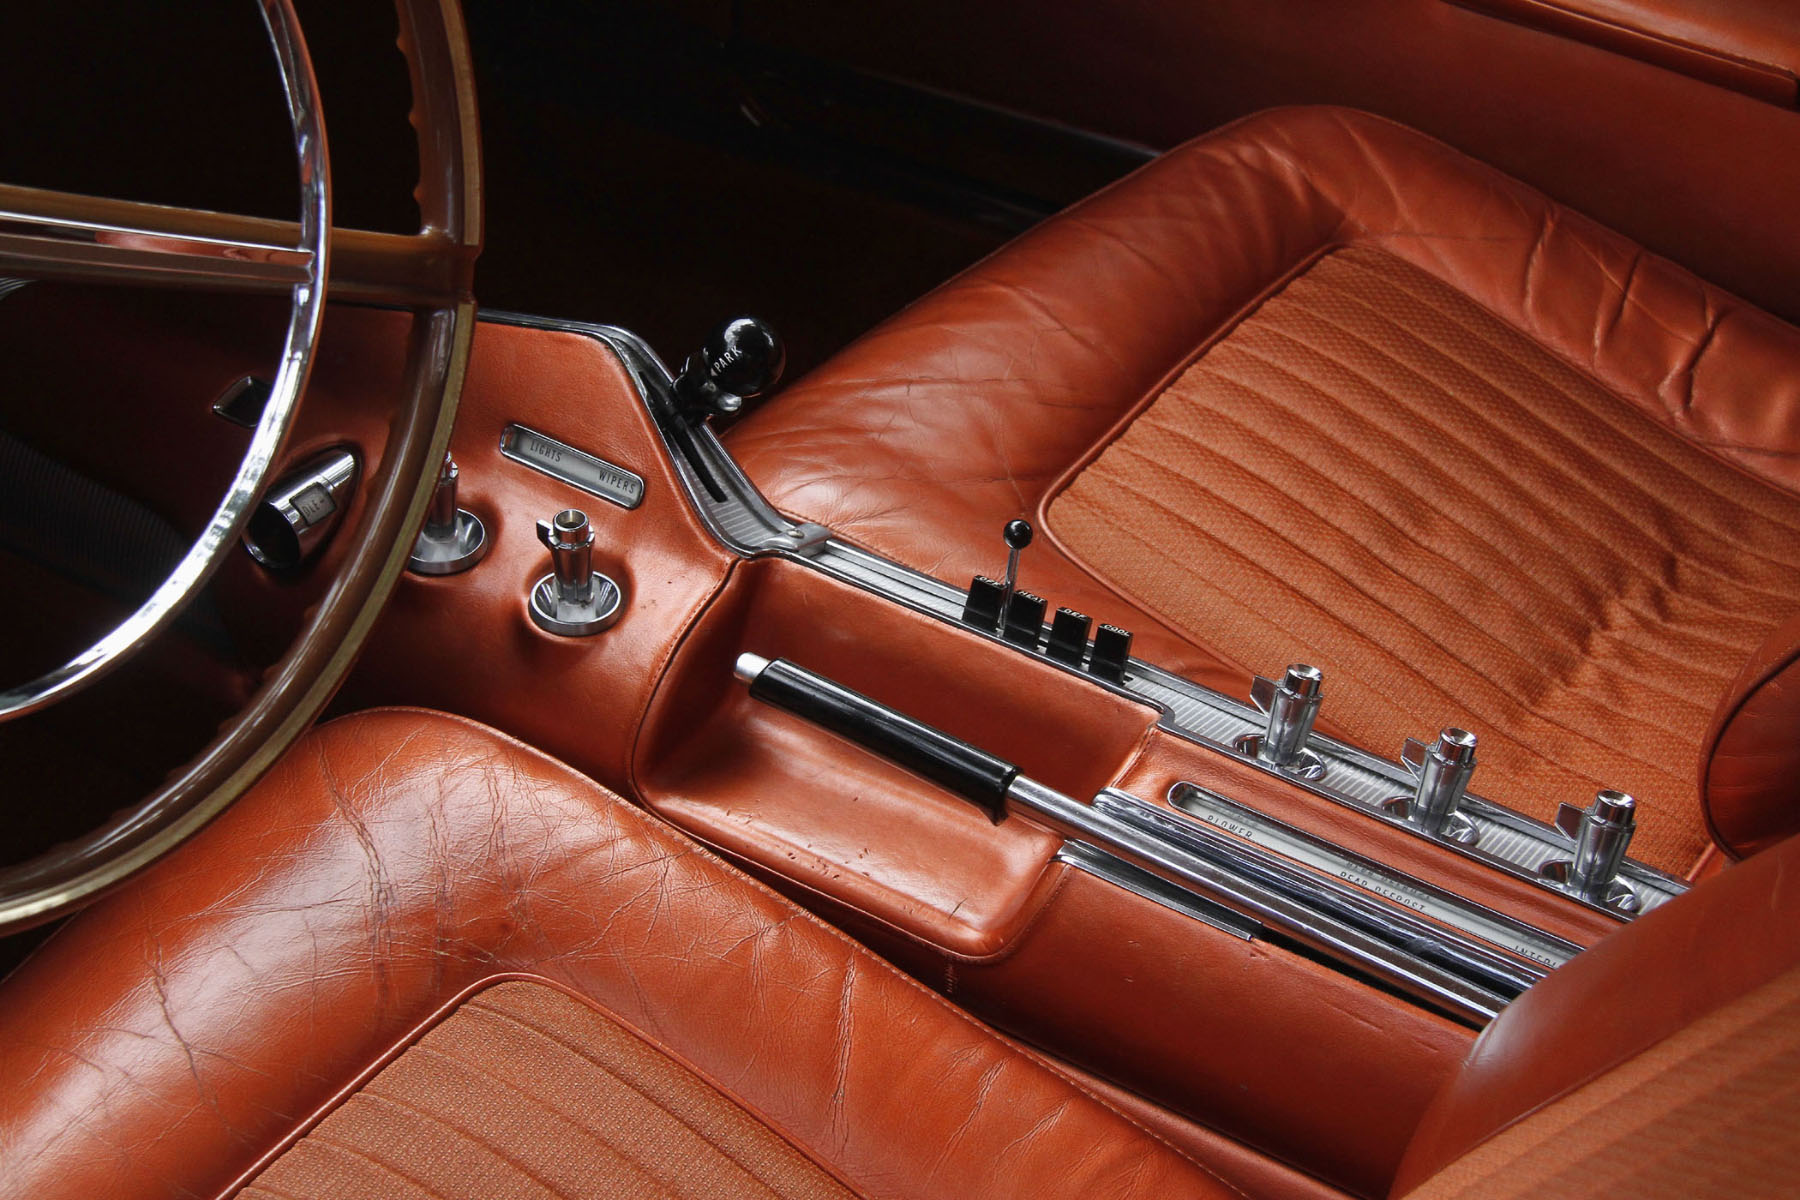 CHRYSLER-TURBINE-INTERIOR-WITH-SPECIAL-CONTROLS